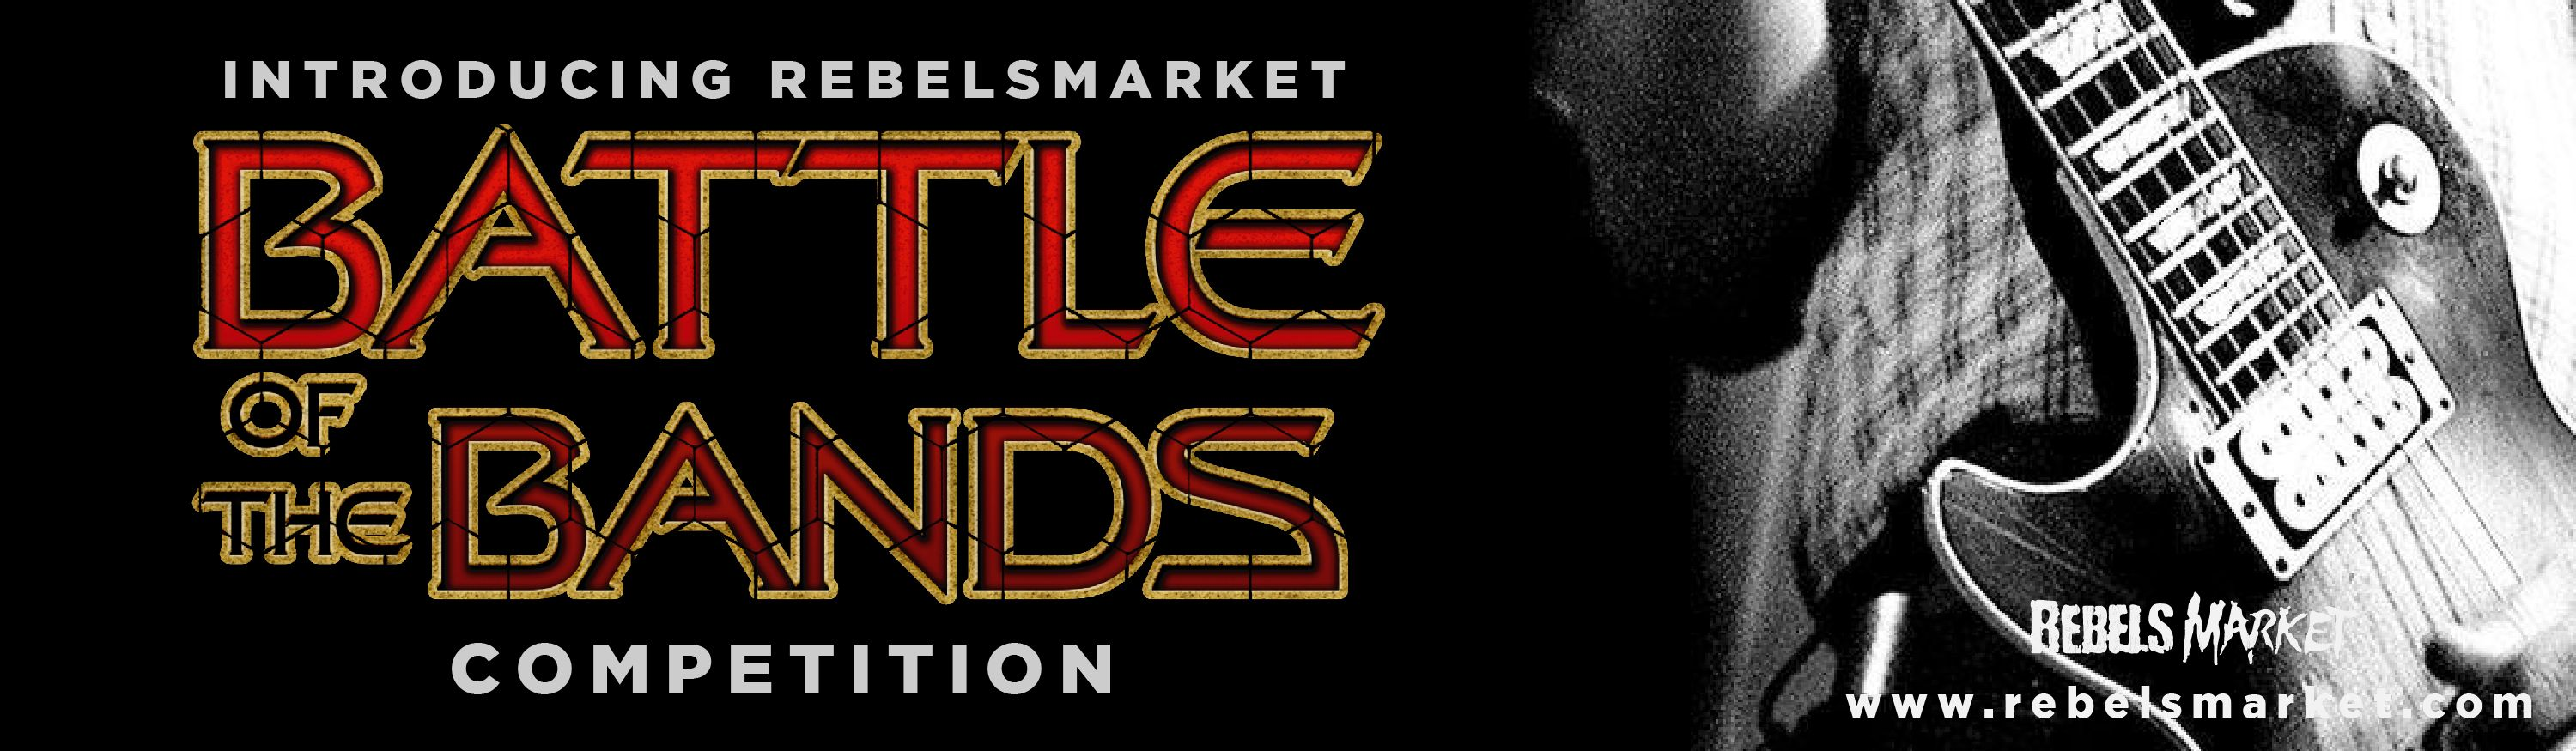 Introducing: The RebelsMarket Battle Of The Bands Competition